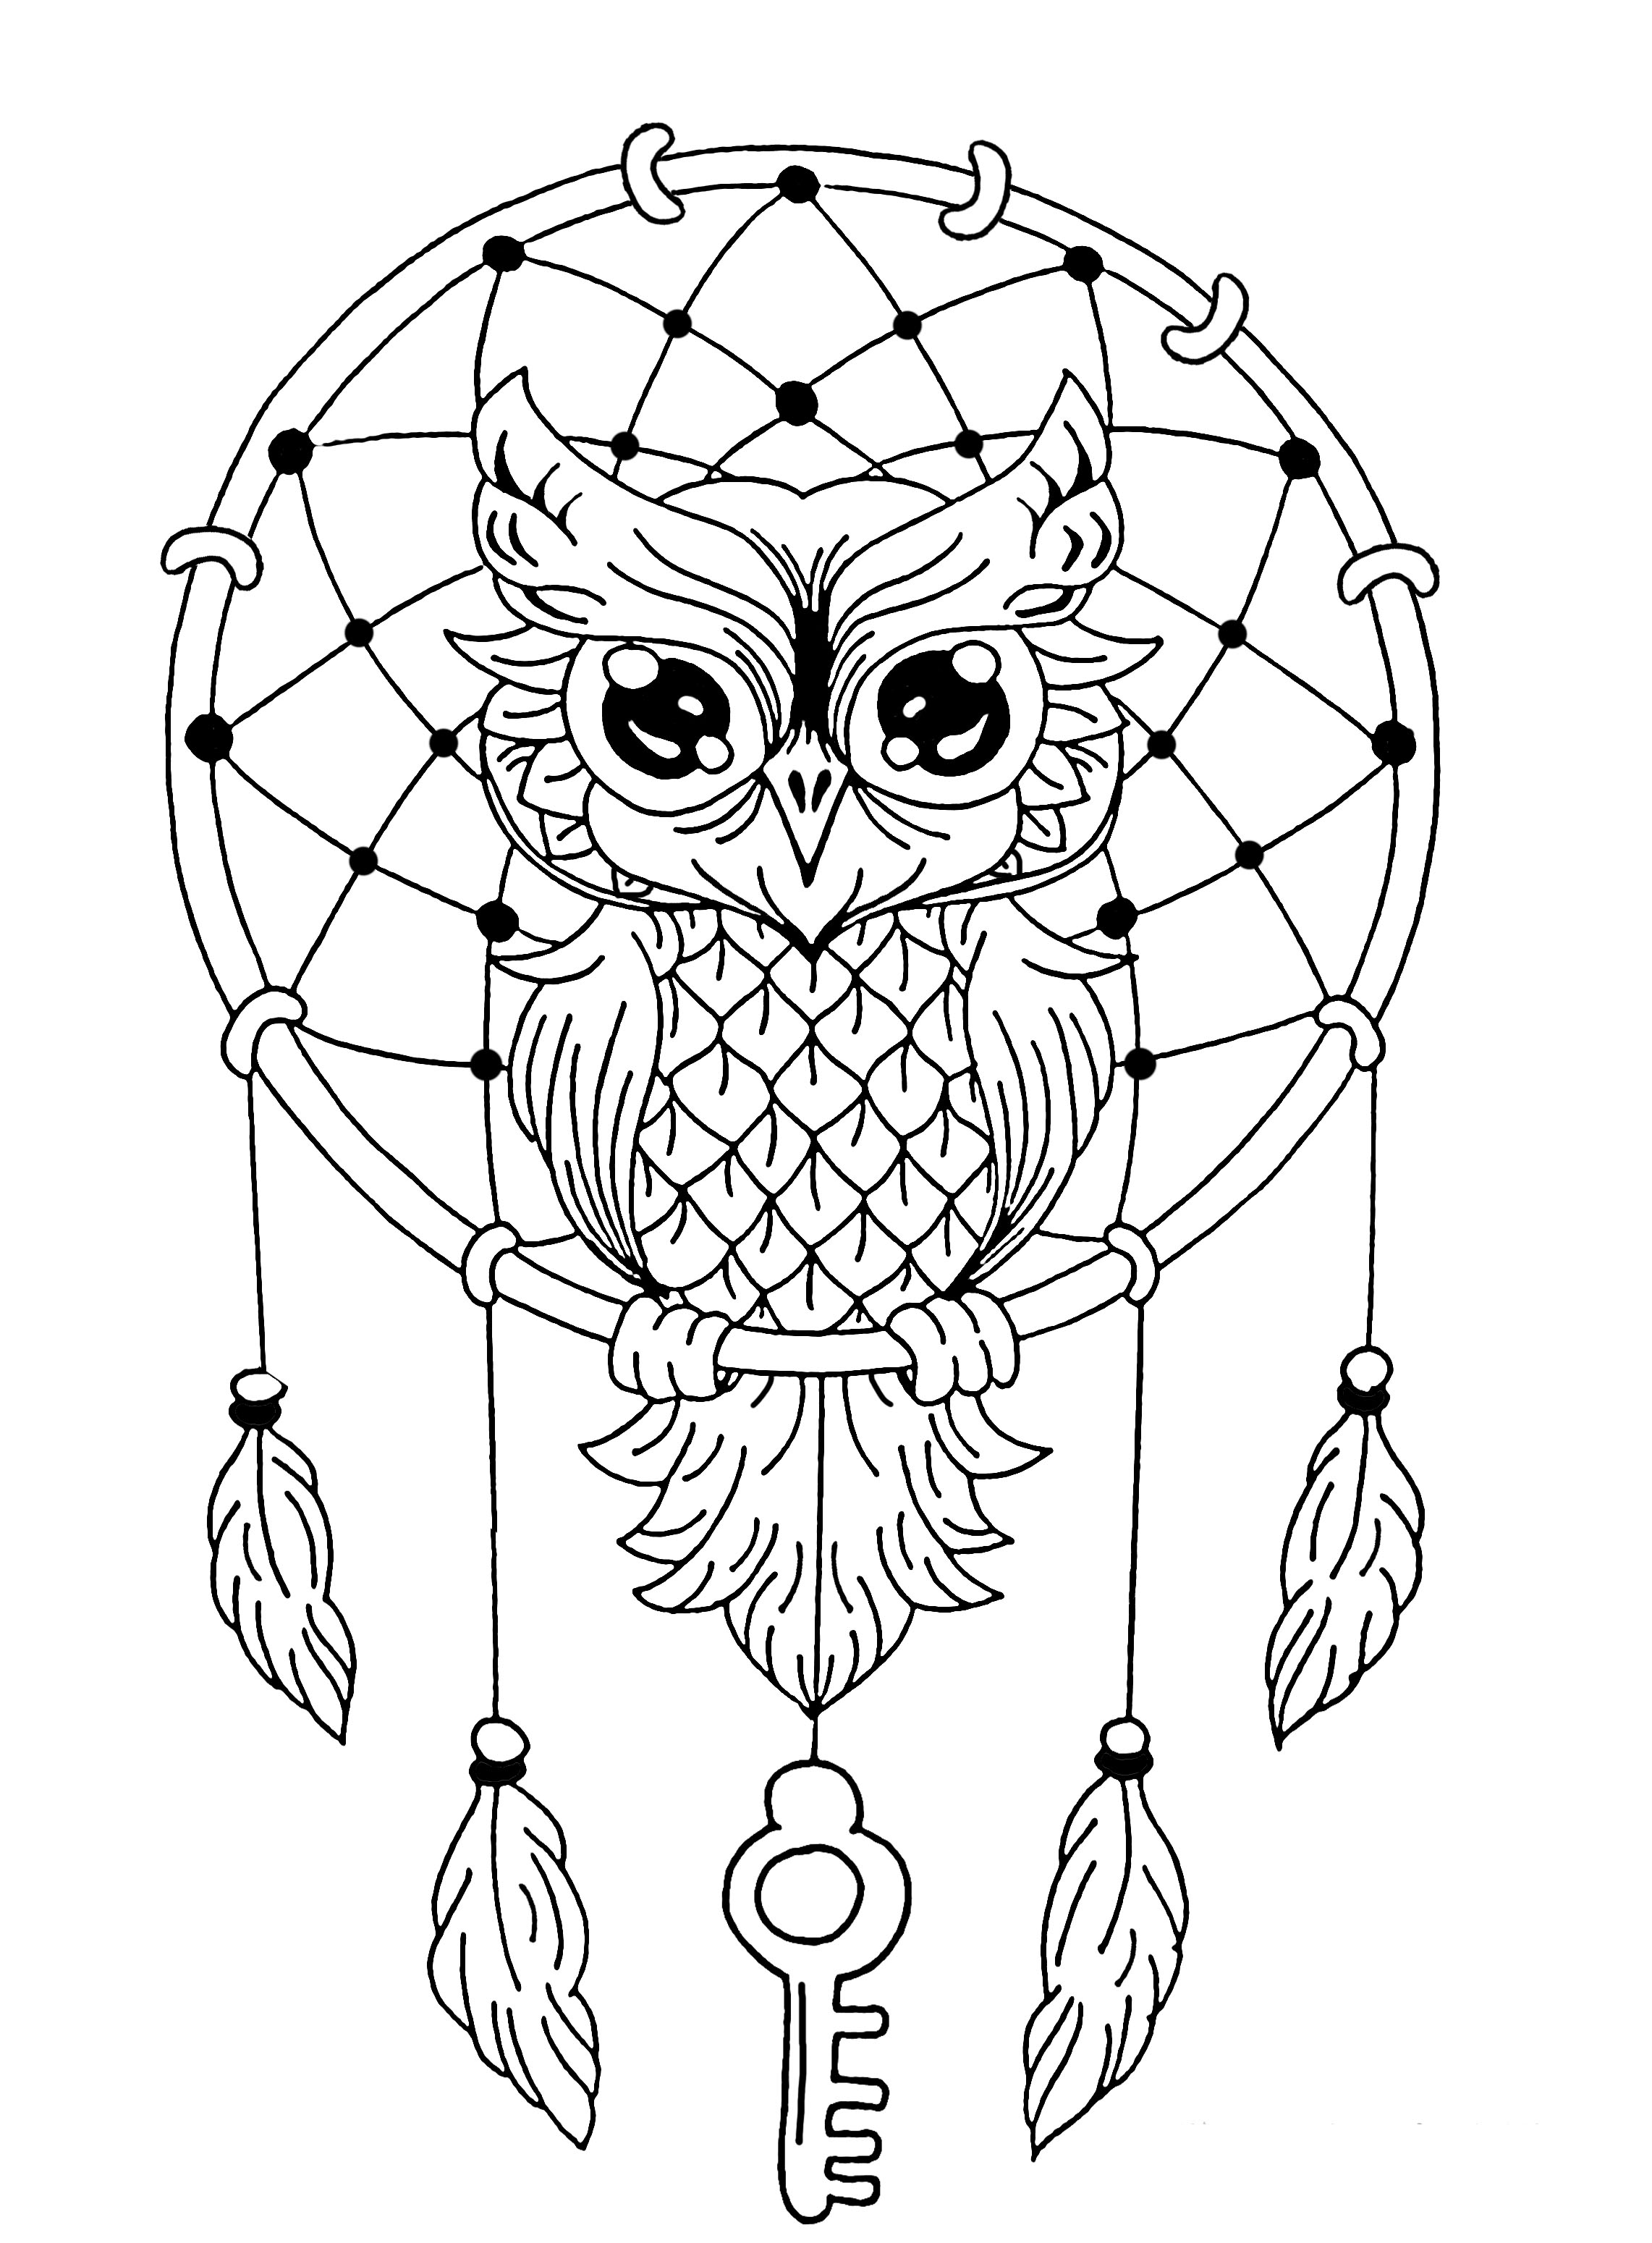 coloring pages for children toys coloring pages best coloring pages for kids children pages coloring for